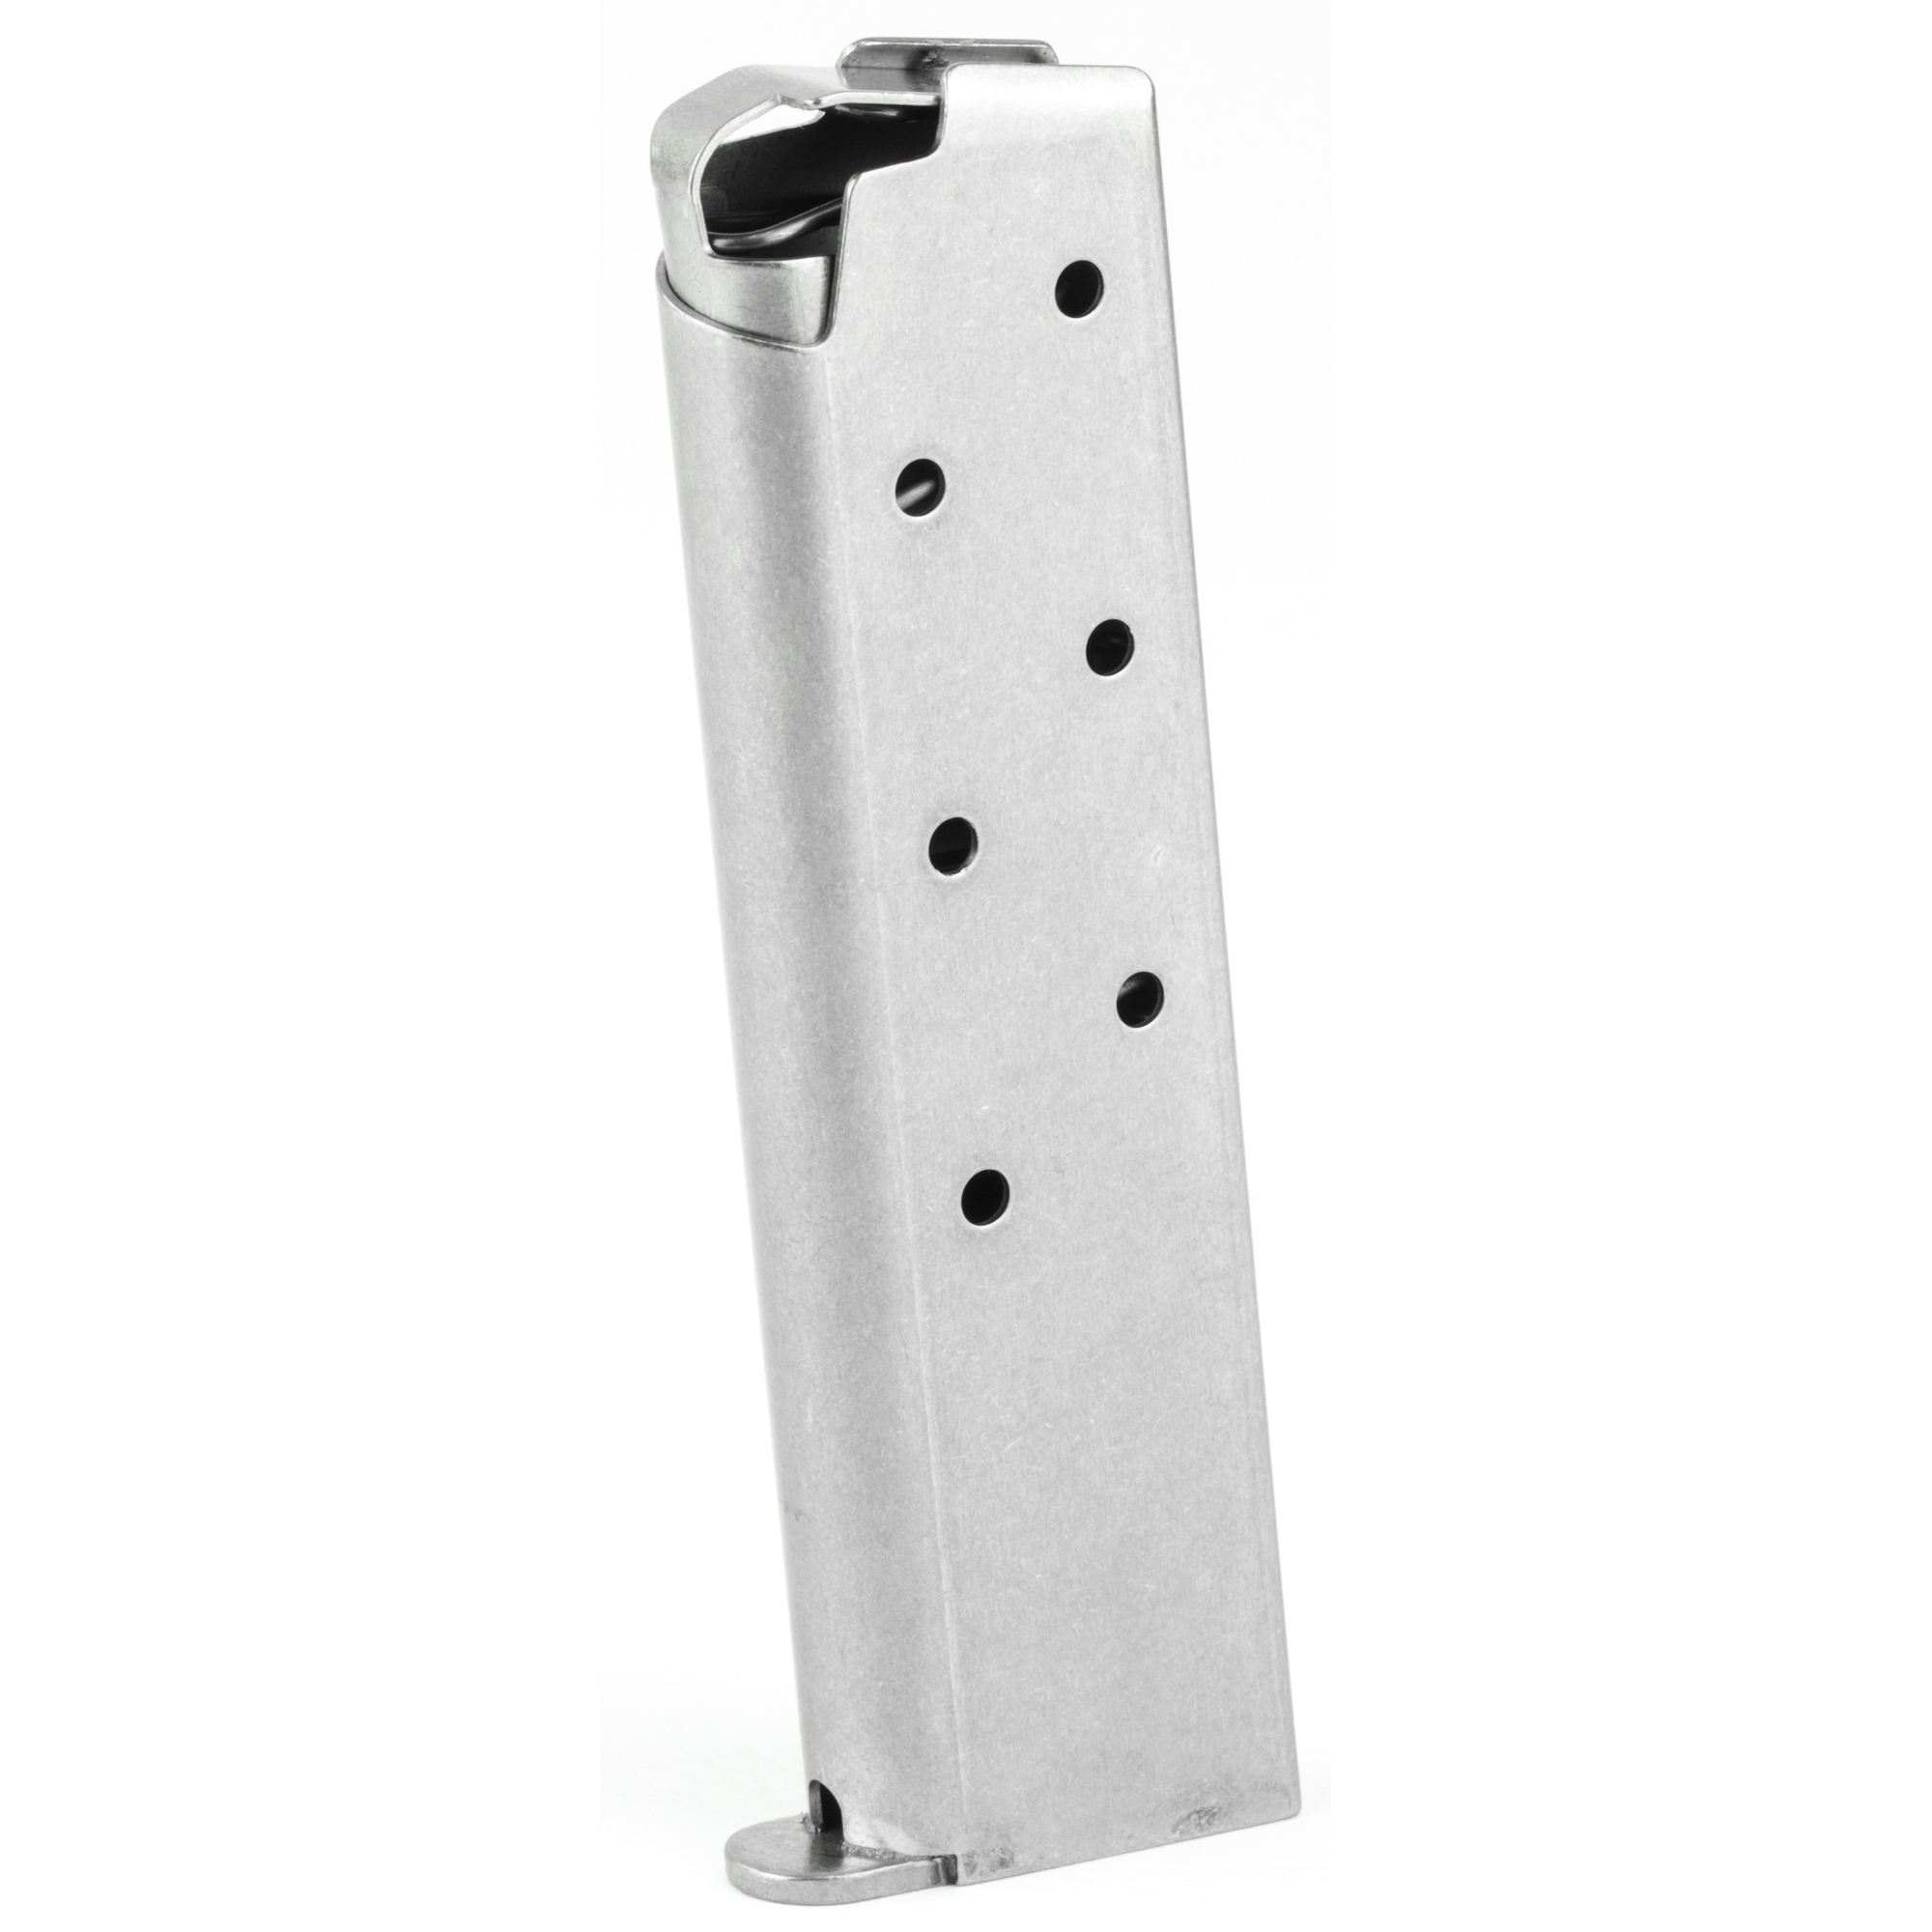 """The Rock Island Armory Baby Rock Magazine is a standard factory replacement magazine. This magazine is for the Baby Rock model chambered in 380ACP and holds 7 rounds of ammunition. It is made of steel and is made to Armscor/Rock Island Armory specifications and tolerances"""" using the same manufacturing and materials as the original equipment magazines"""" ensuring perfect fit and operation."""